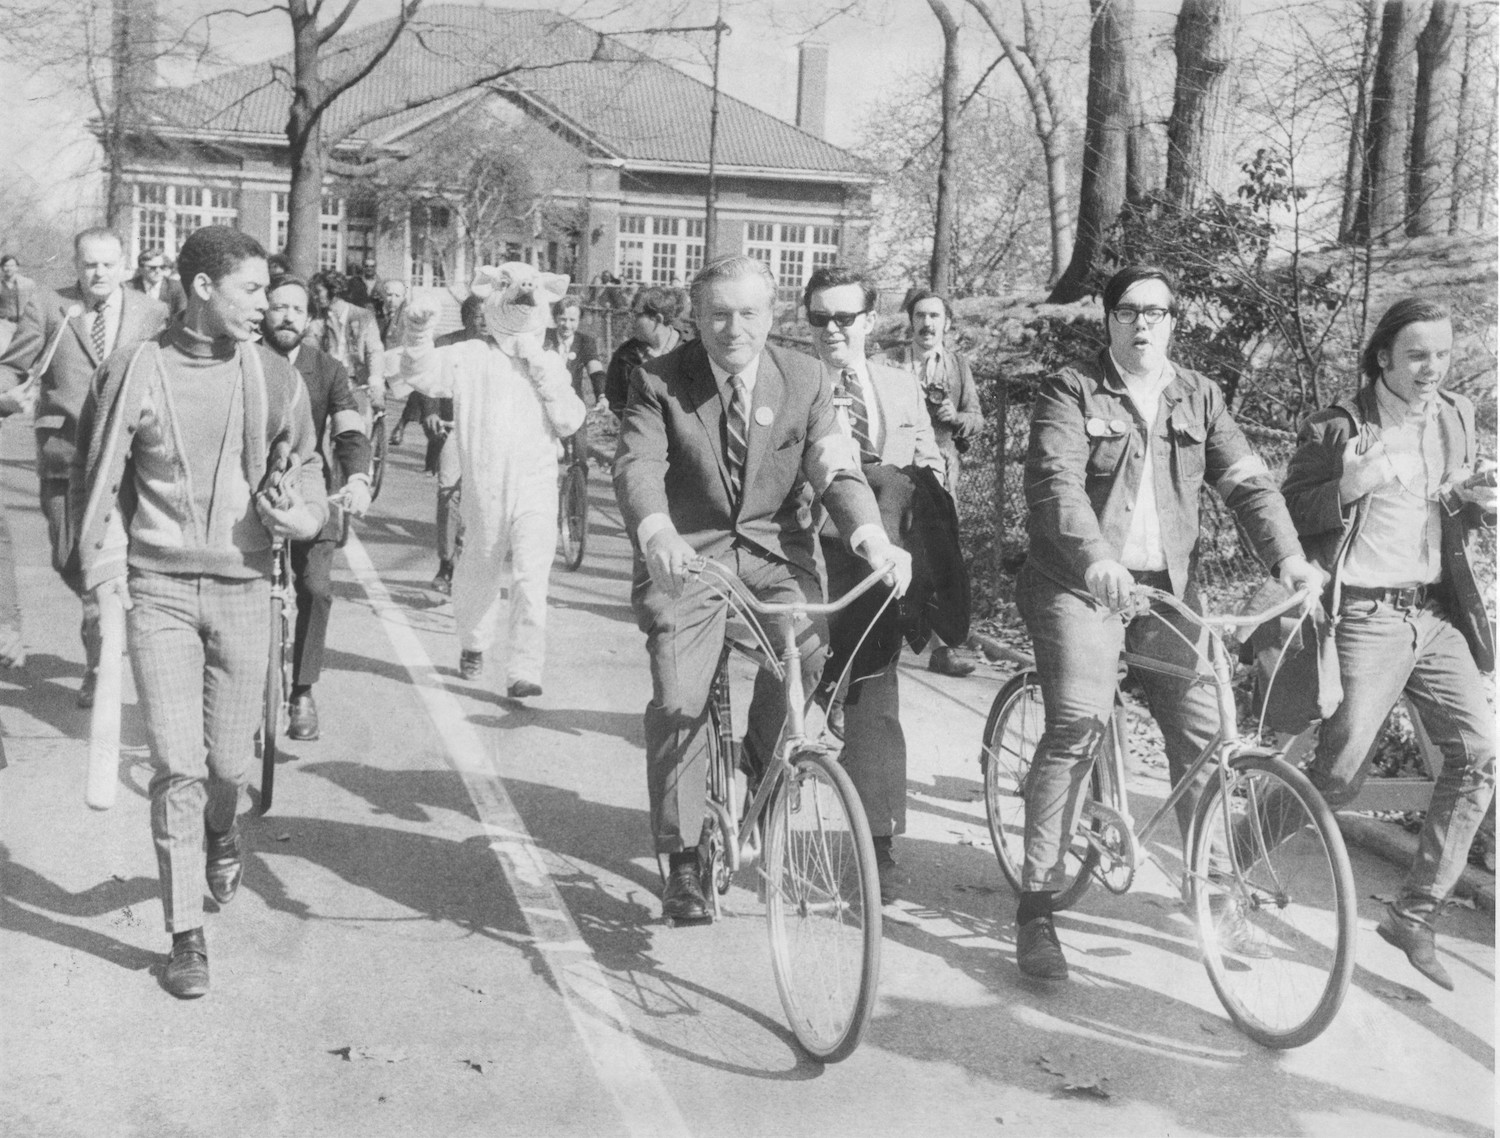 New York Governor Nelson A. Rockefeller rides a bike in Prospect Park, Brooklyn in observance of the first Earth Day.